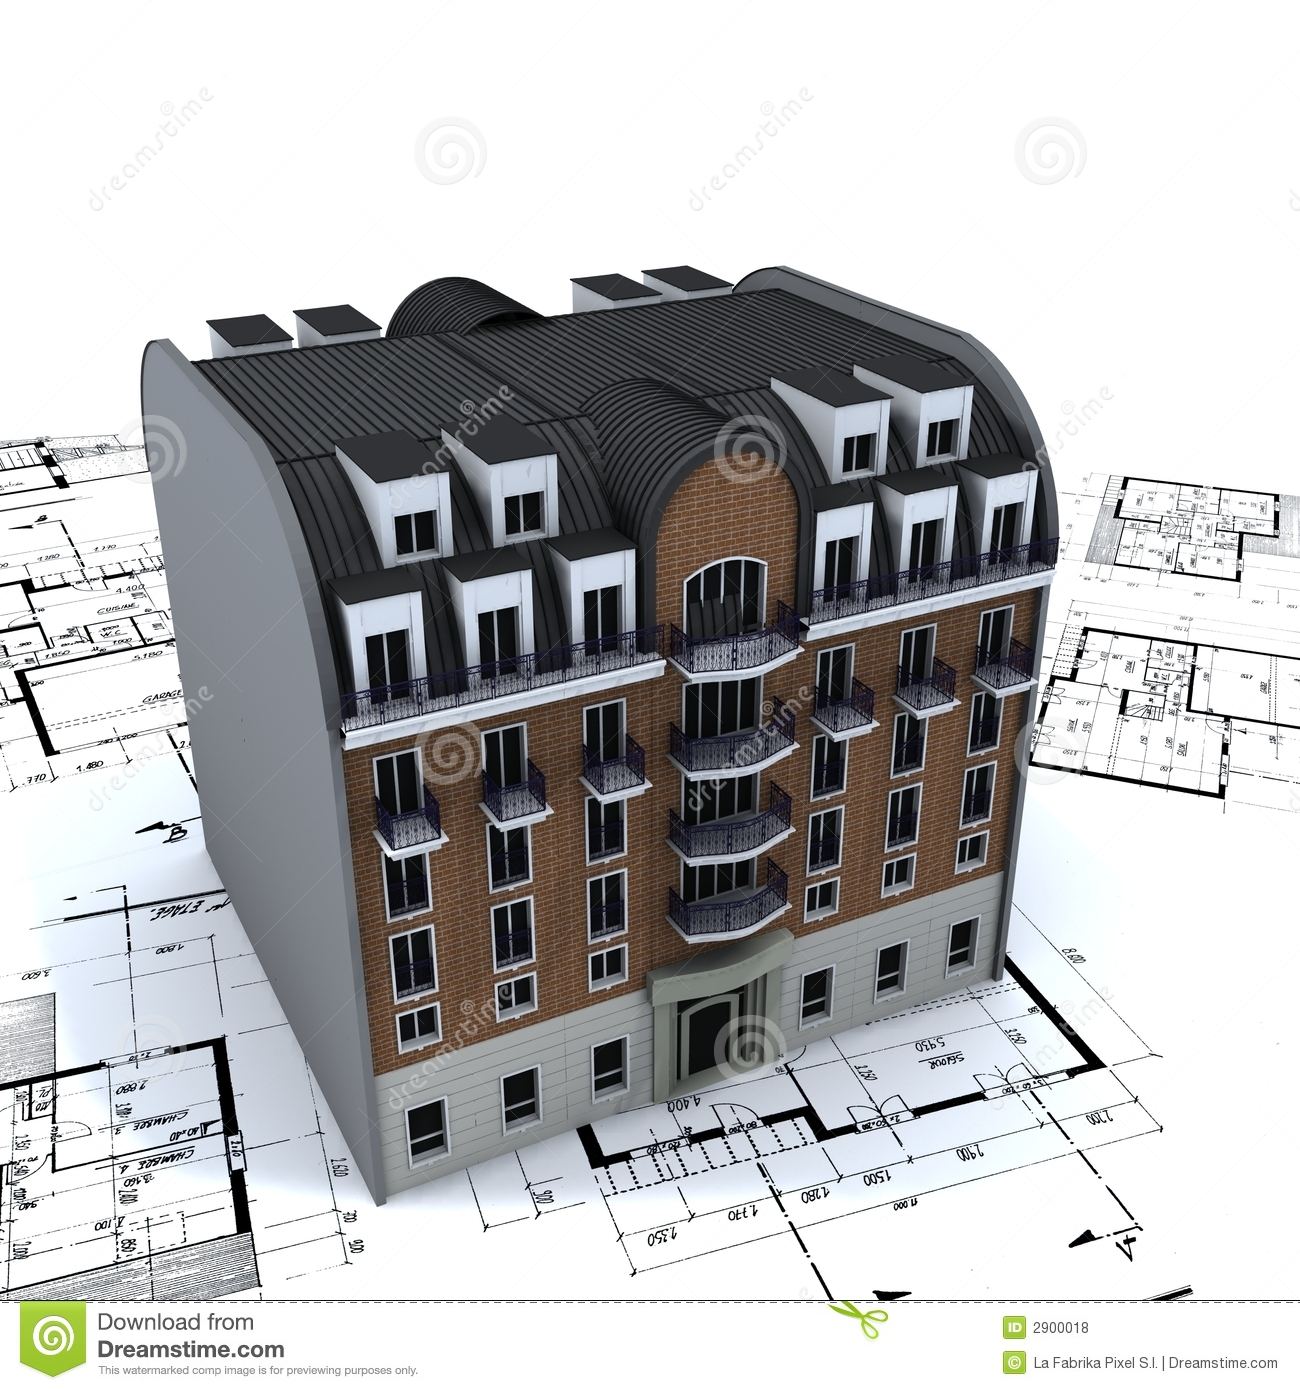 Residential Building On Plans Royalty Free Stock Photos Image